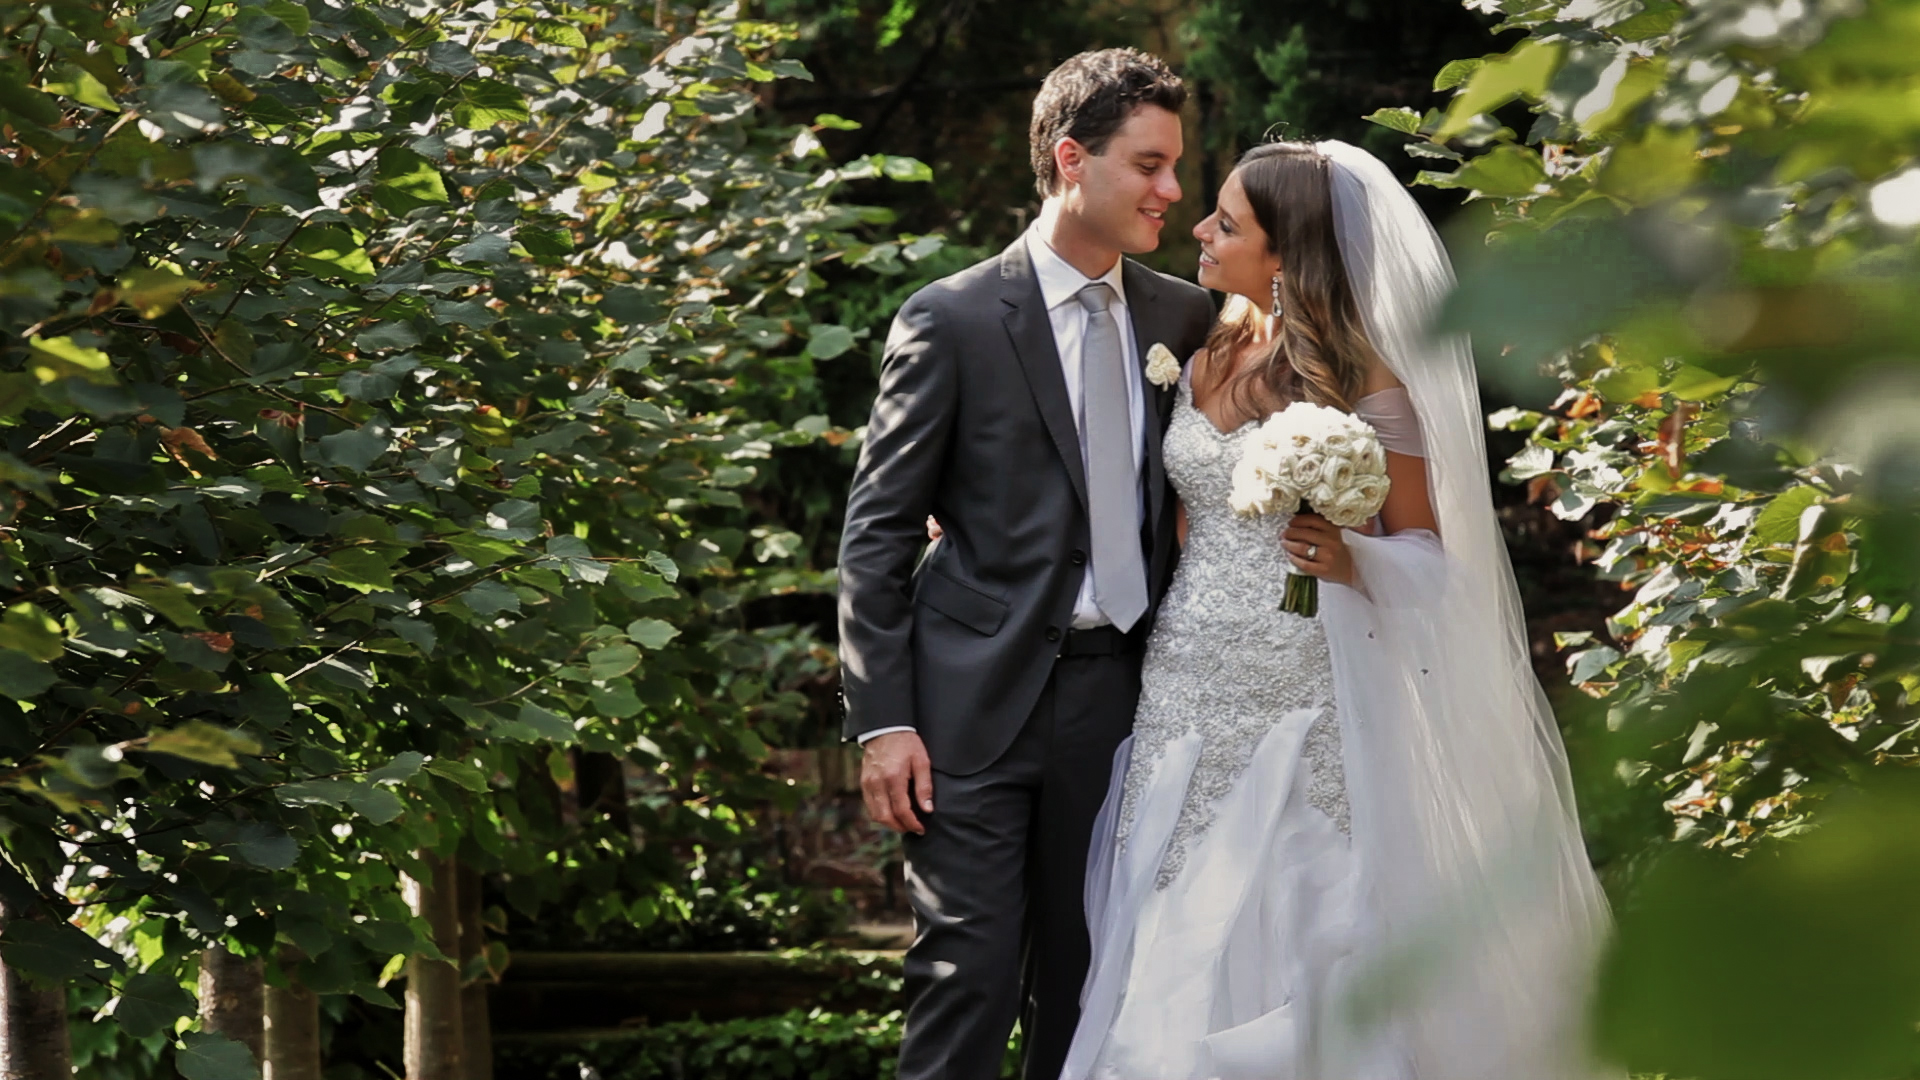 Enthralling Wedding Photography in Melbourne